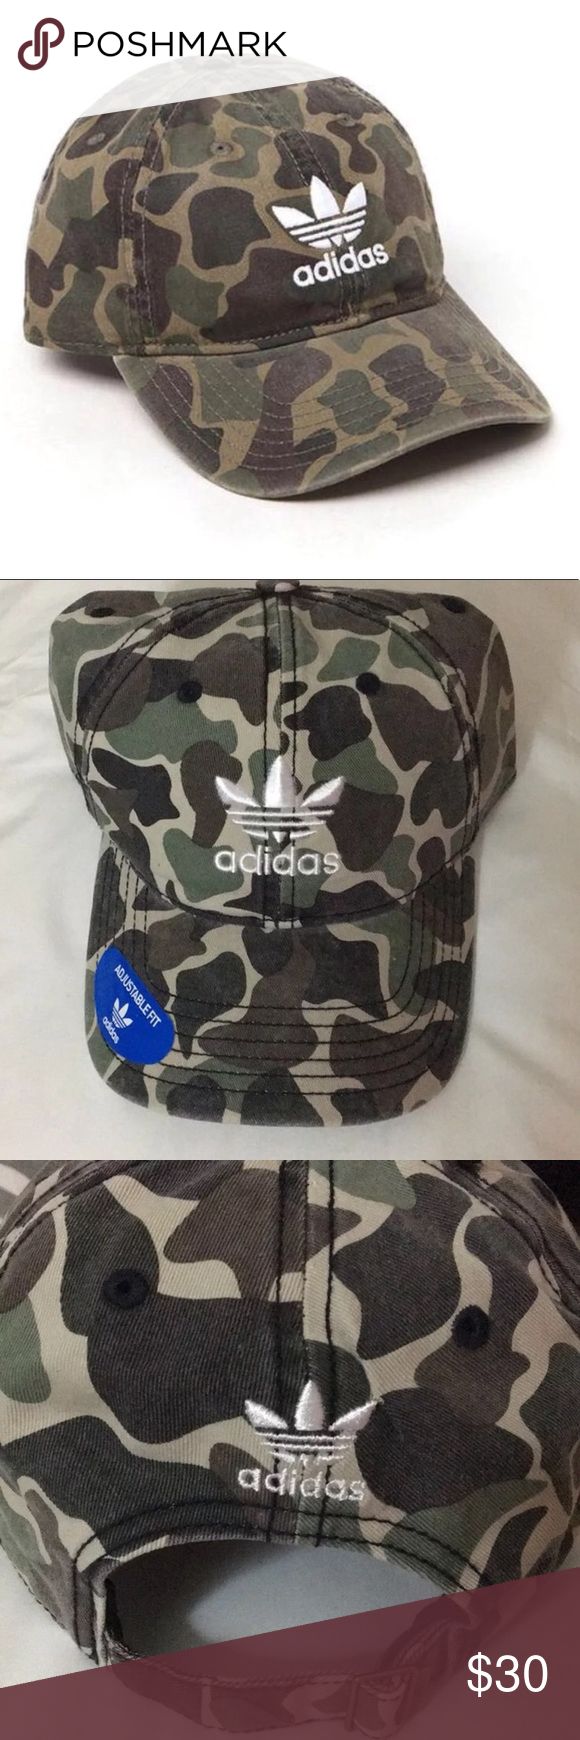 4ec2fe55573 NWT Adidas Firebird Trefoil Camo Dad Cap Hat Brand new with tags! One size  fits